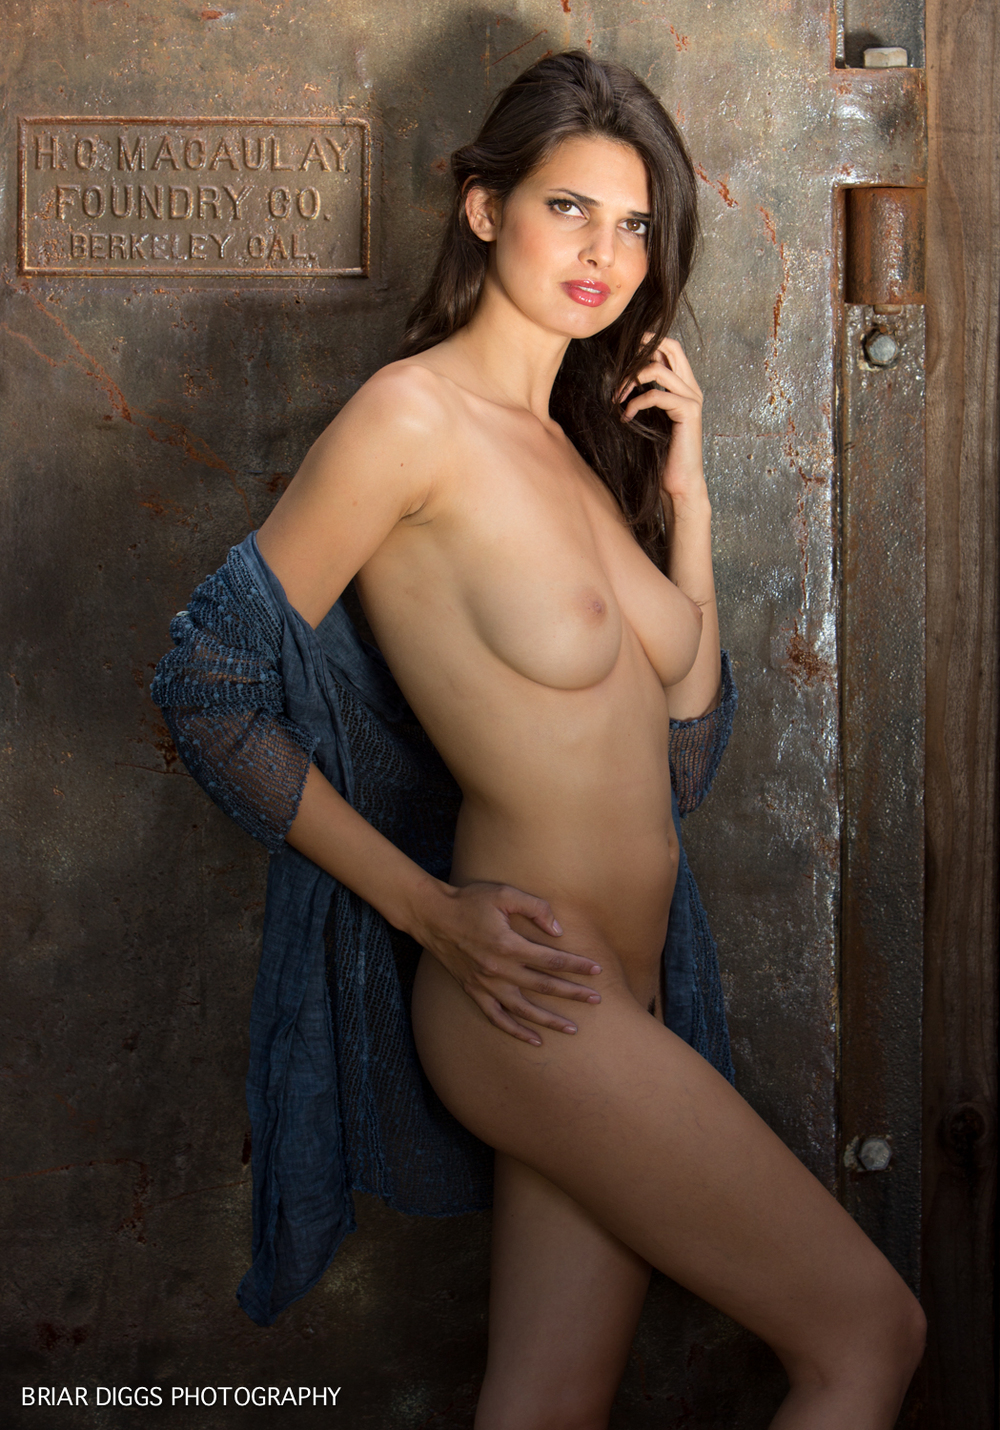 MODELS ART NUDES (COLOR)-4.jpg